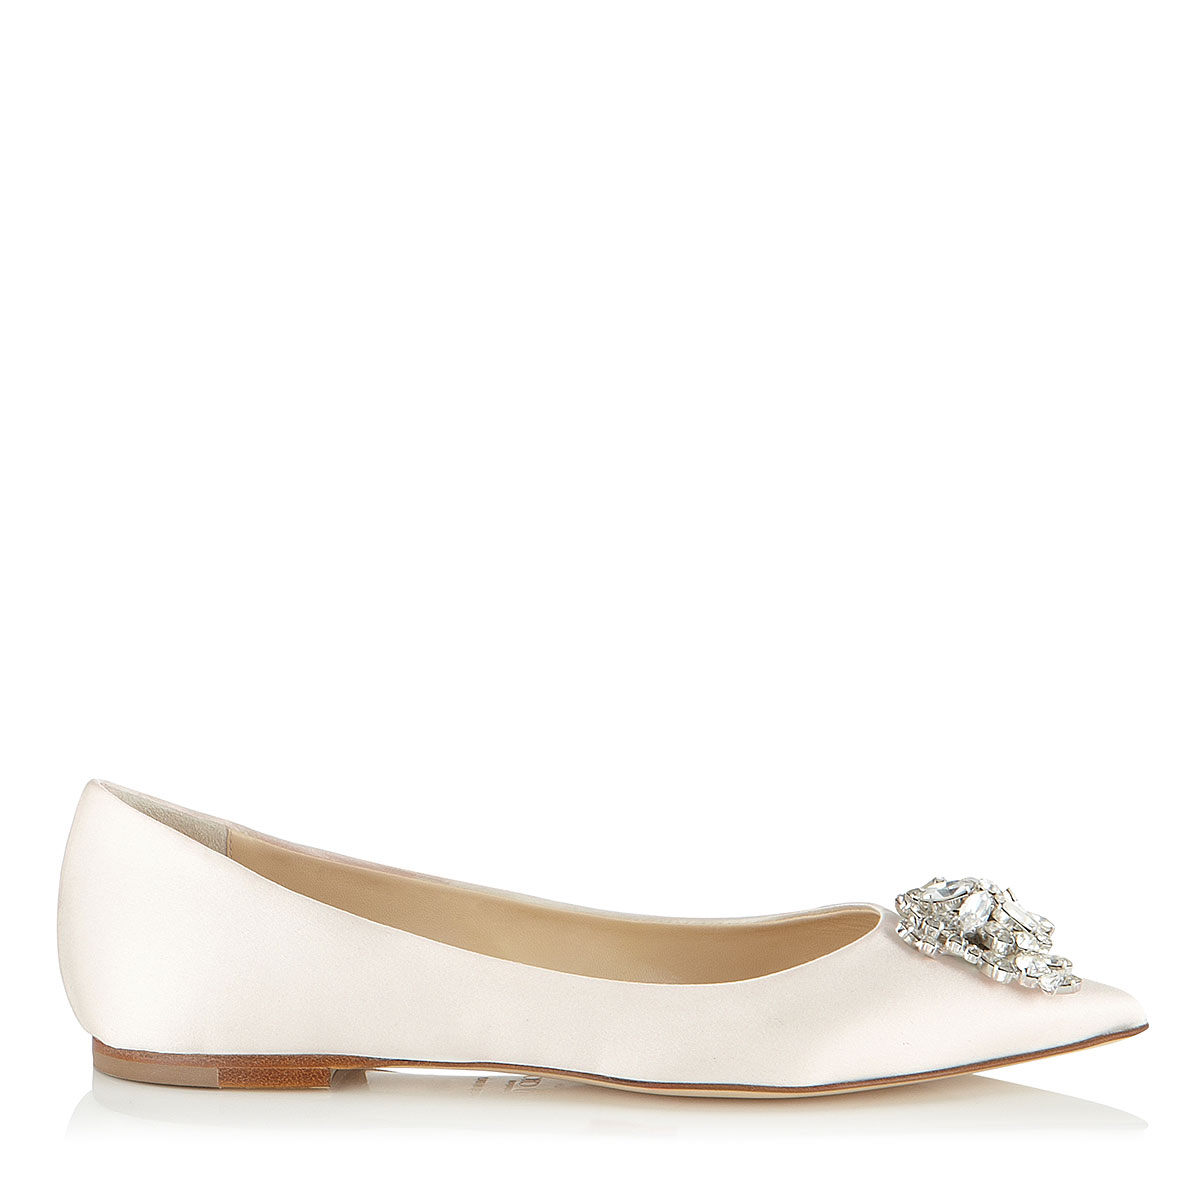 ALINA Ivory Satin Pointy Toe Flats with Crystal Detail by Jimmy Choo